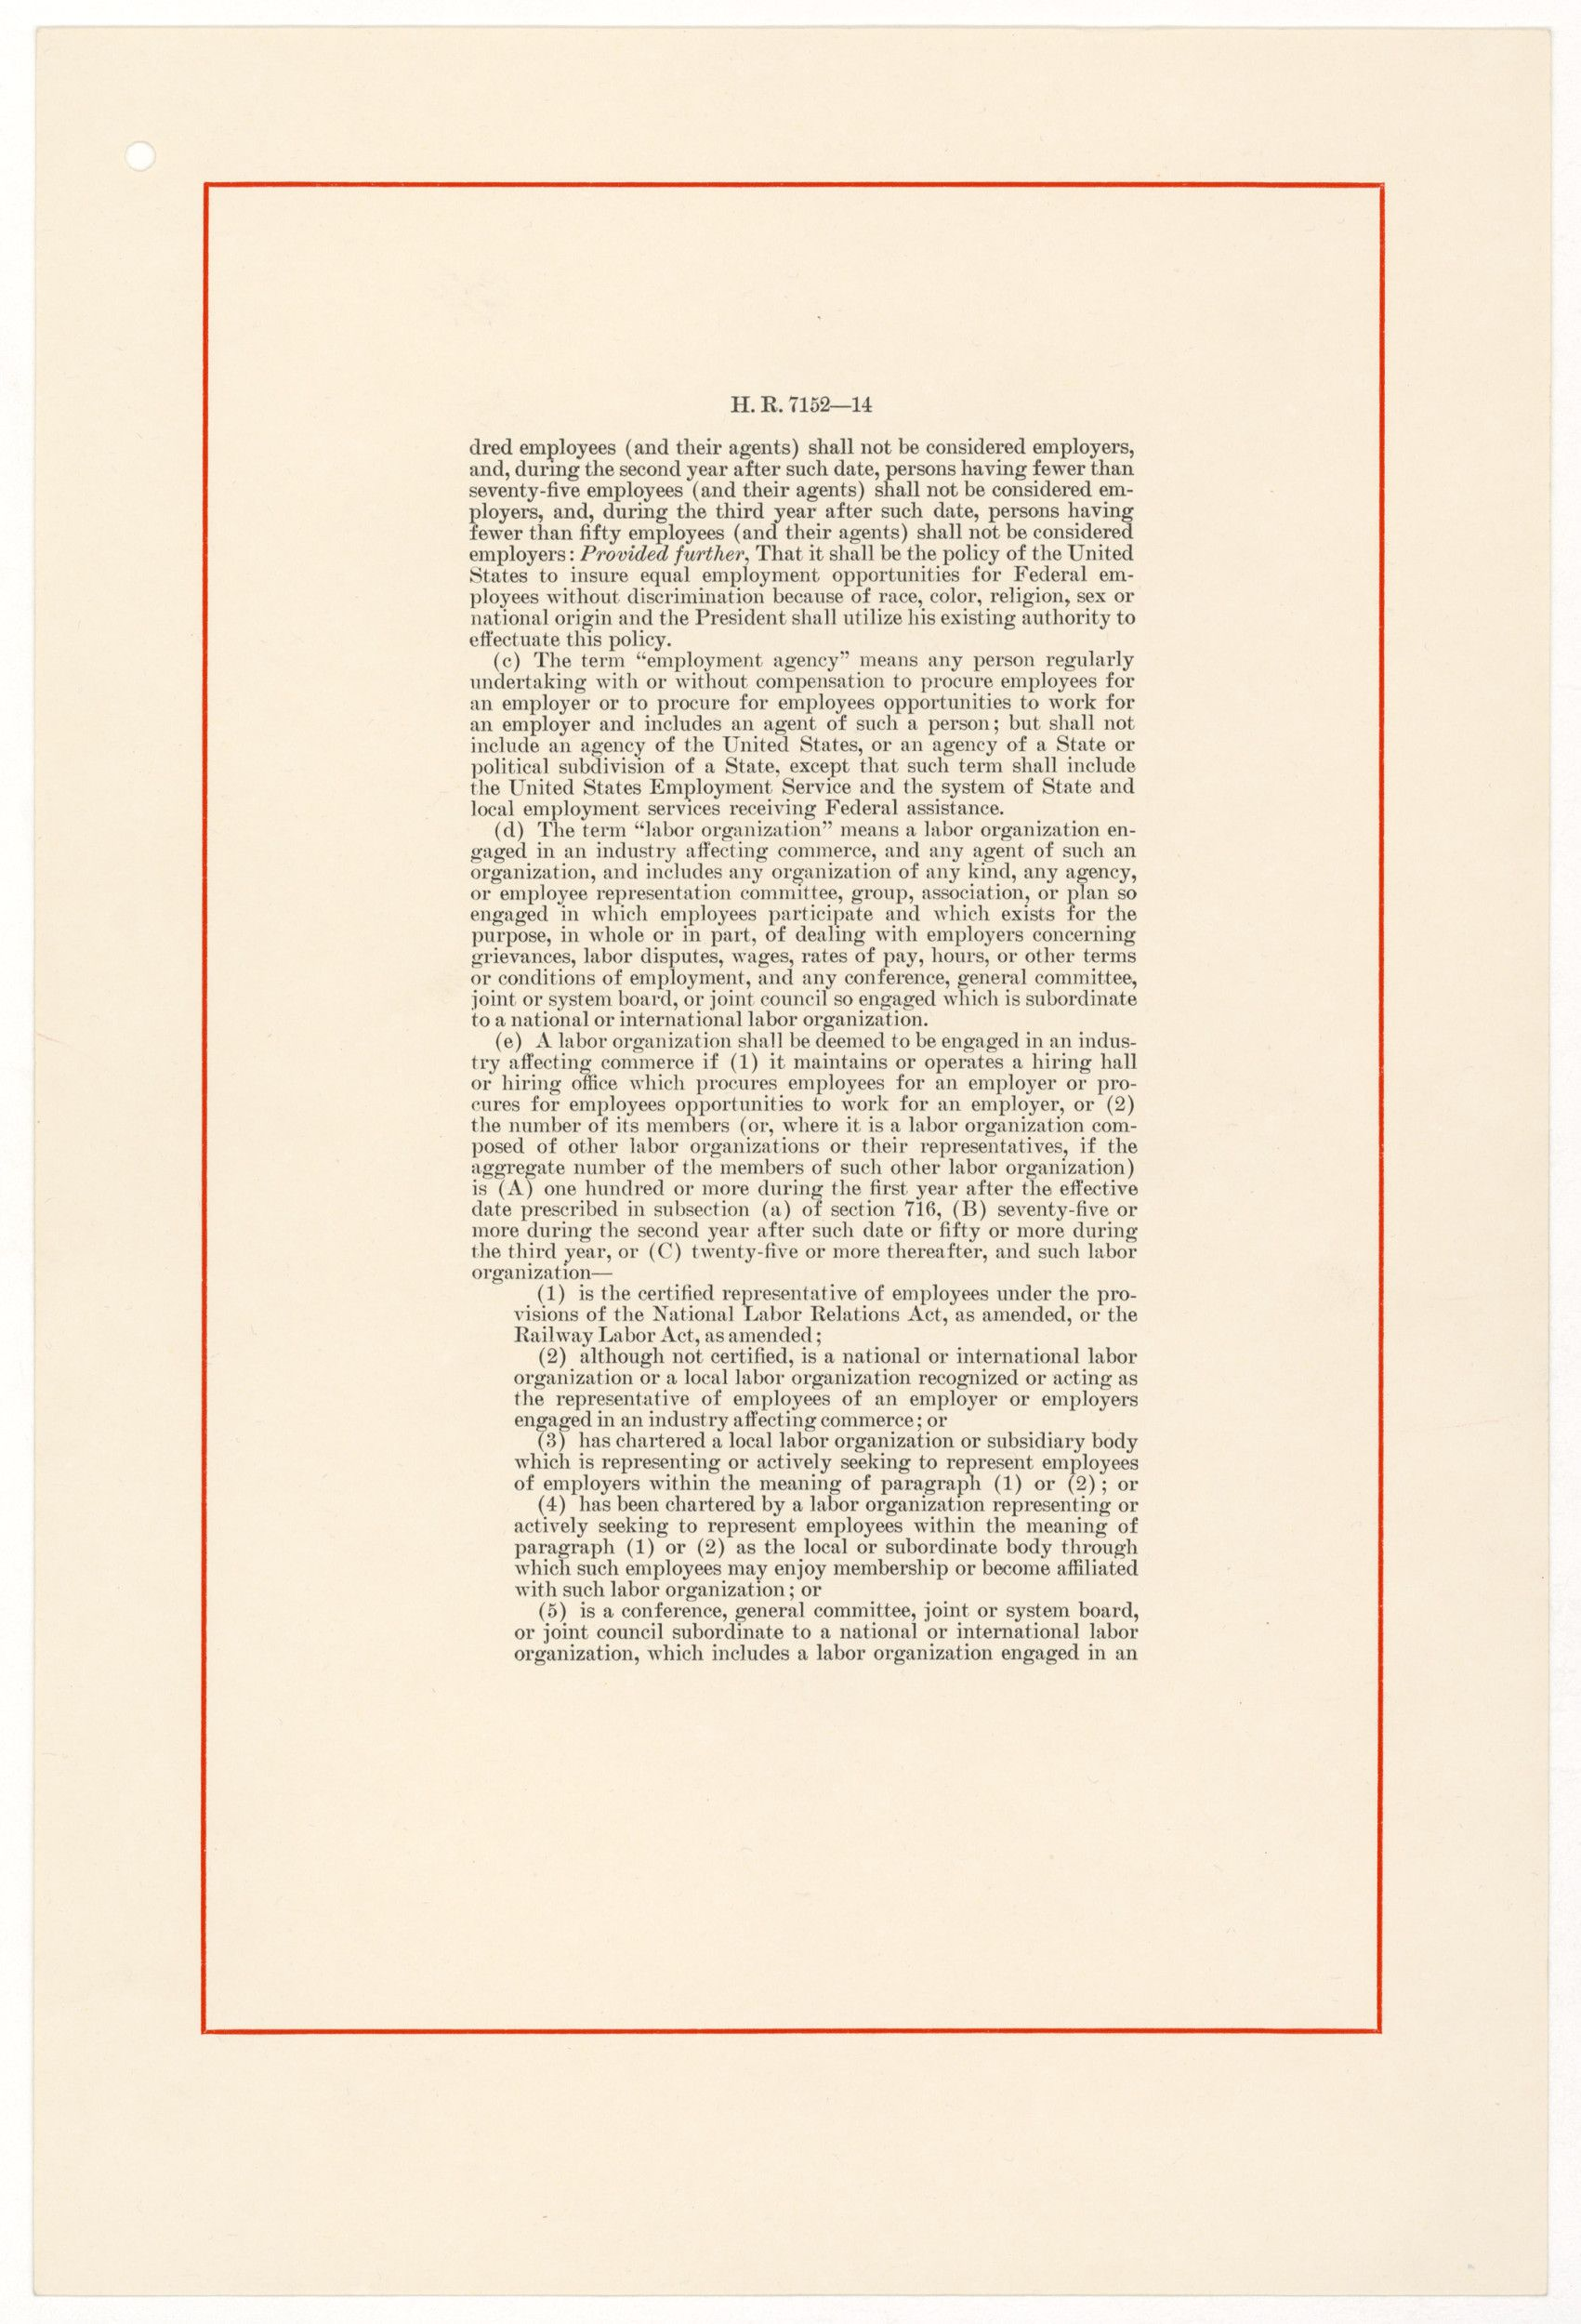 civil rights act of 1964 document